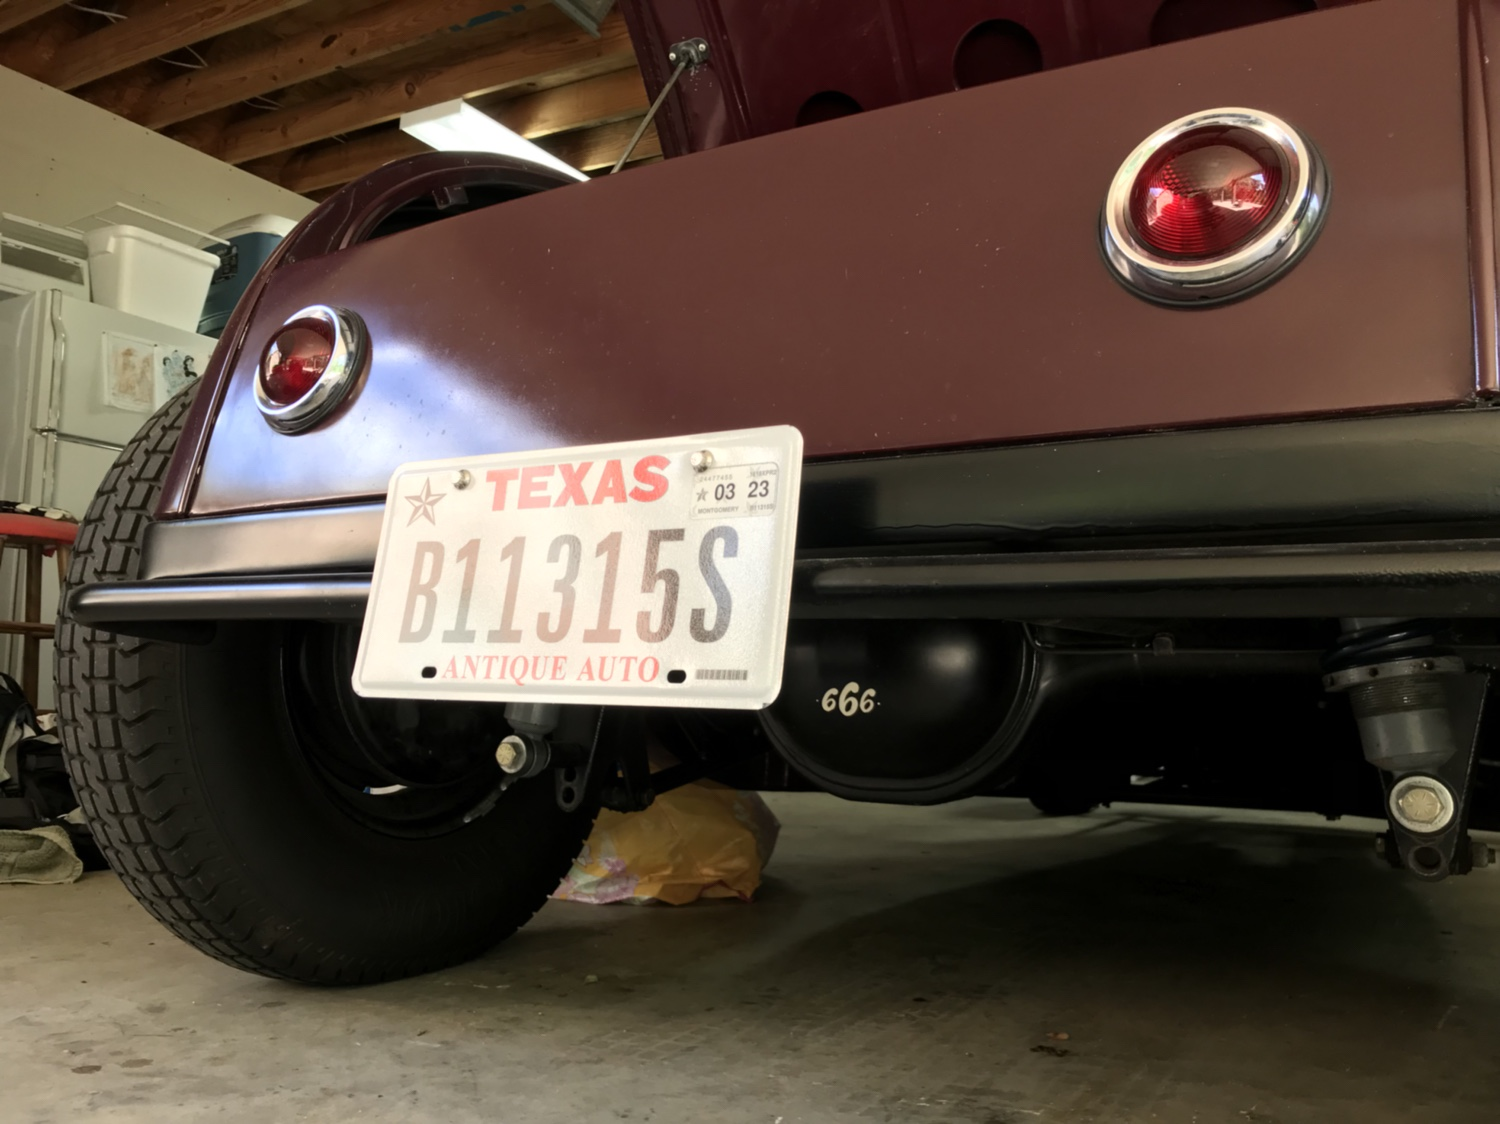 Hot Rods - New Texas Plates | The H.A.M.B.